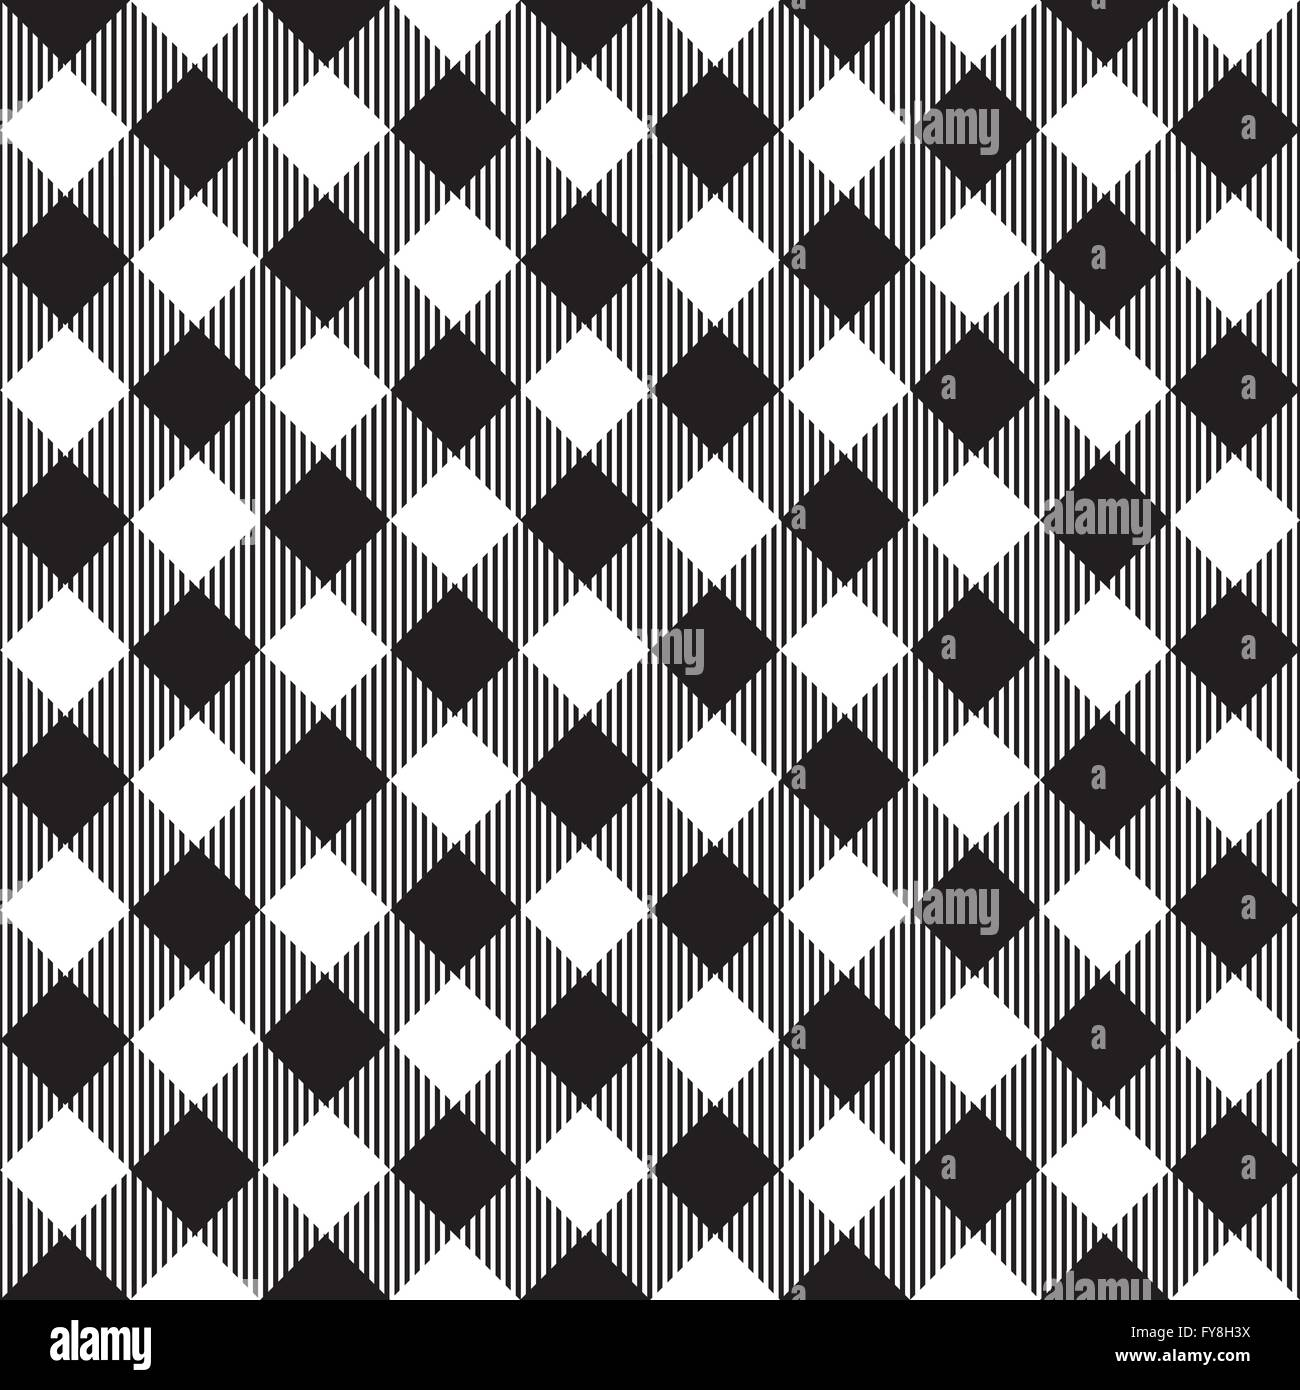 Black Tablecloth Diagonal Seamless Pattern. Vector Illustration Of  Traditional Gingham Dining Cloth With Fabric Stock